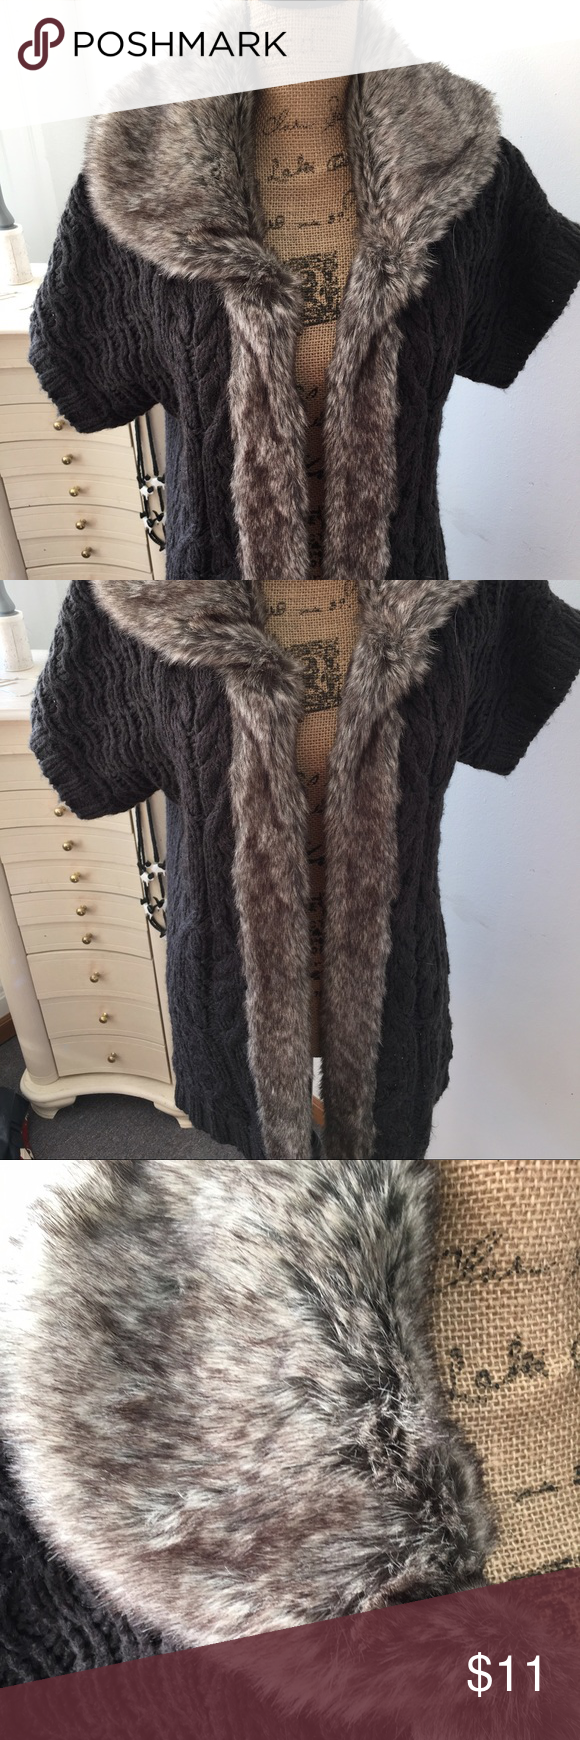 Sweater with faux fur collar Cute gray sweater with fun faux fur collar and trim Substantial weight and longer length Open style Very lightly worn From Kohls. Cats in da house 😻😻 Apt 9 Sweaters Cardigans